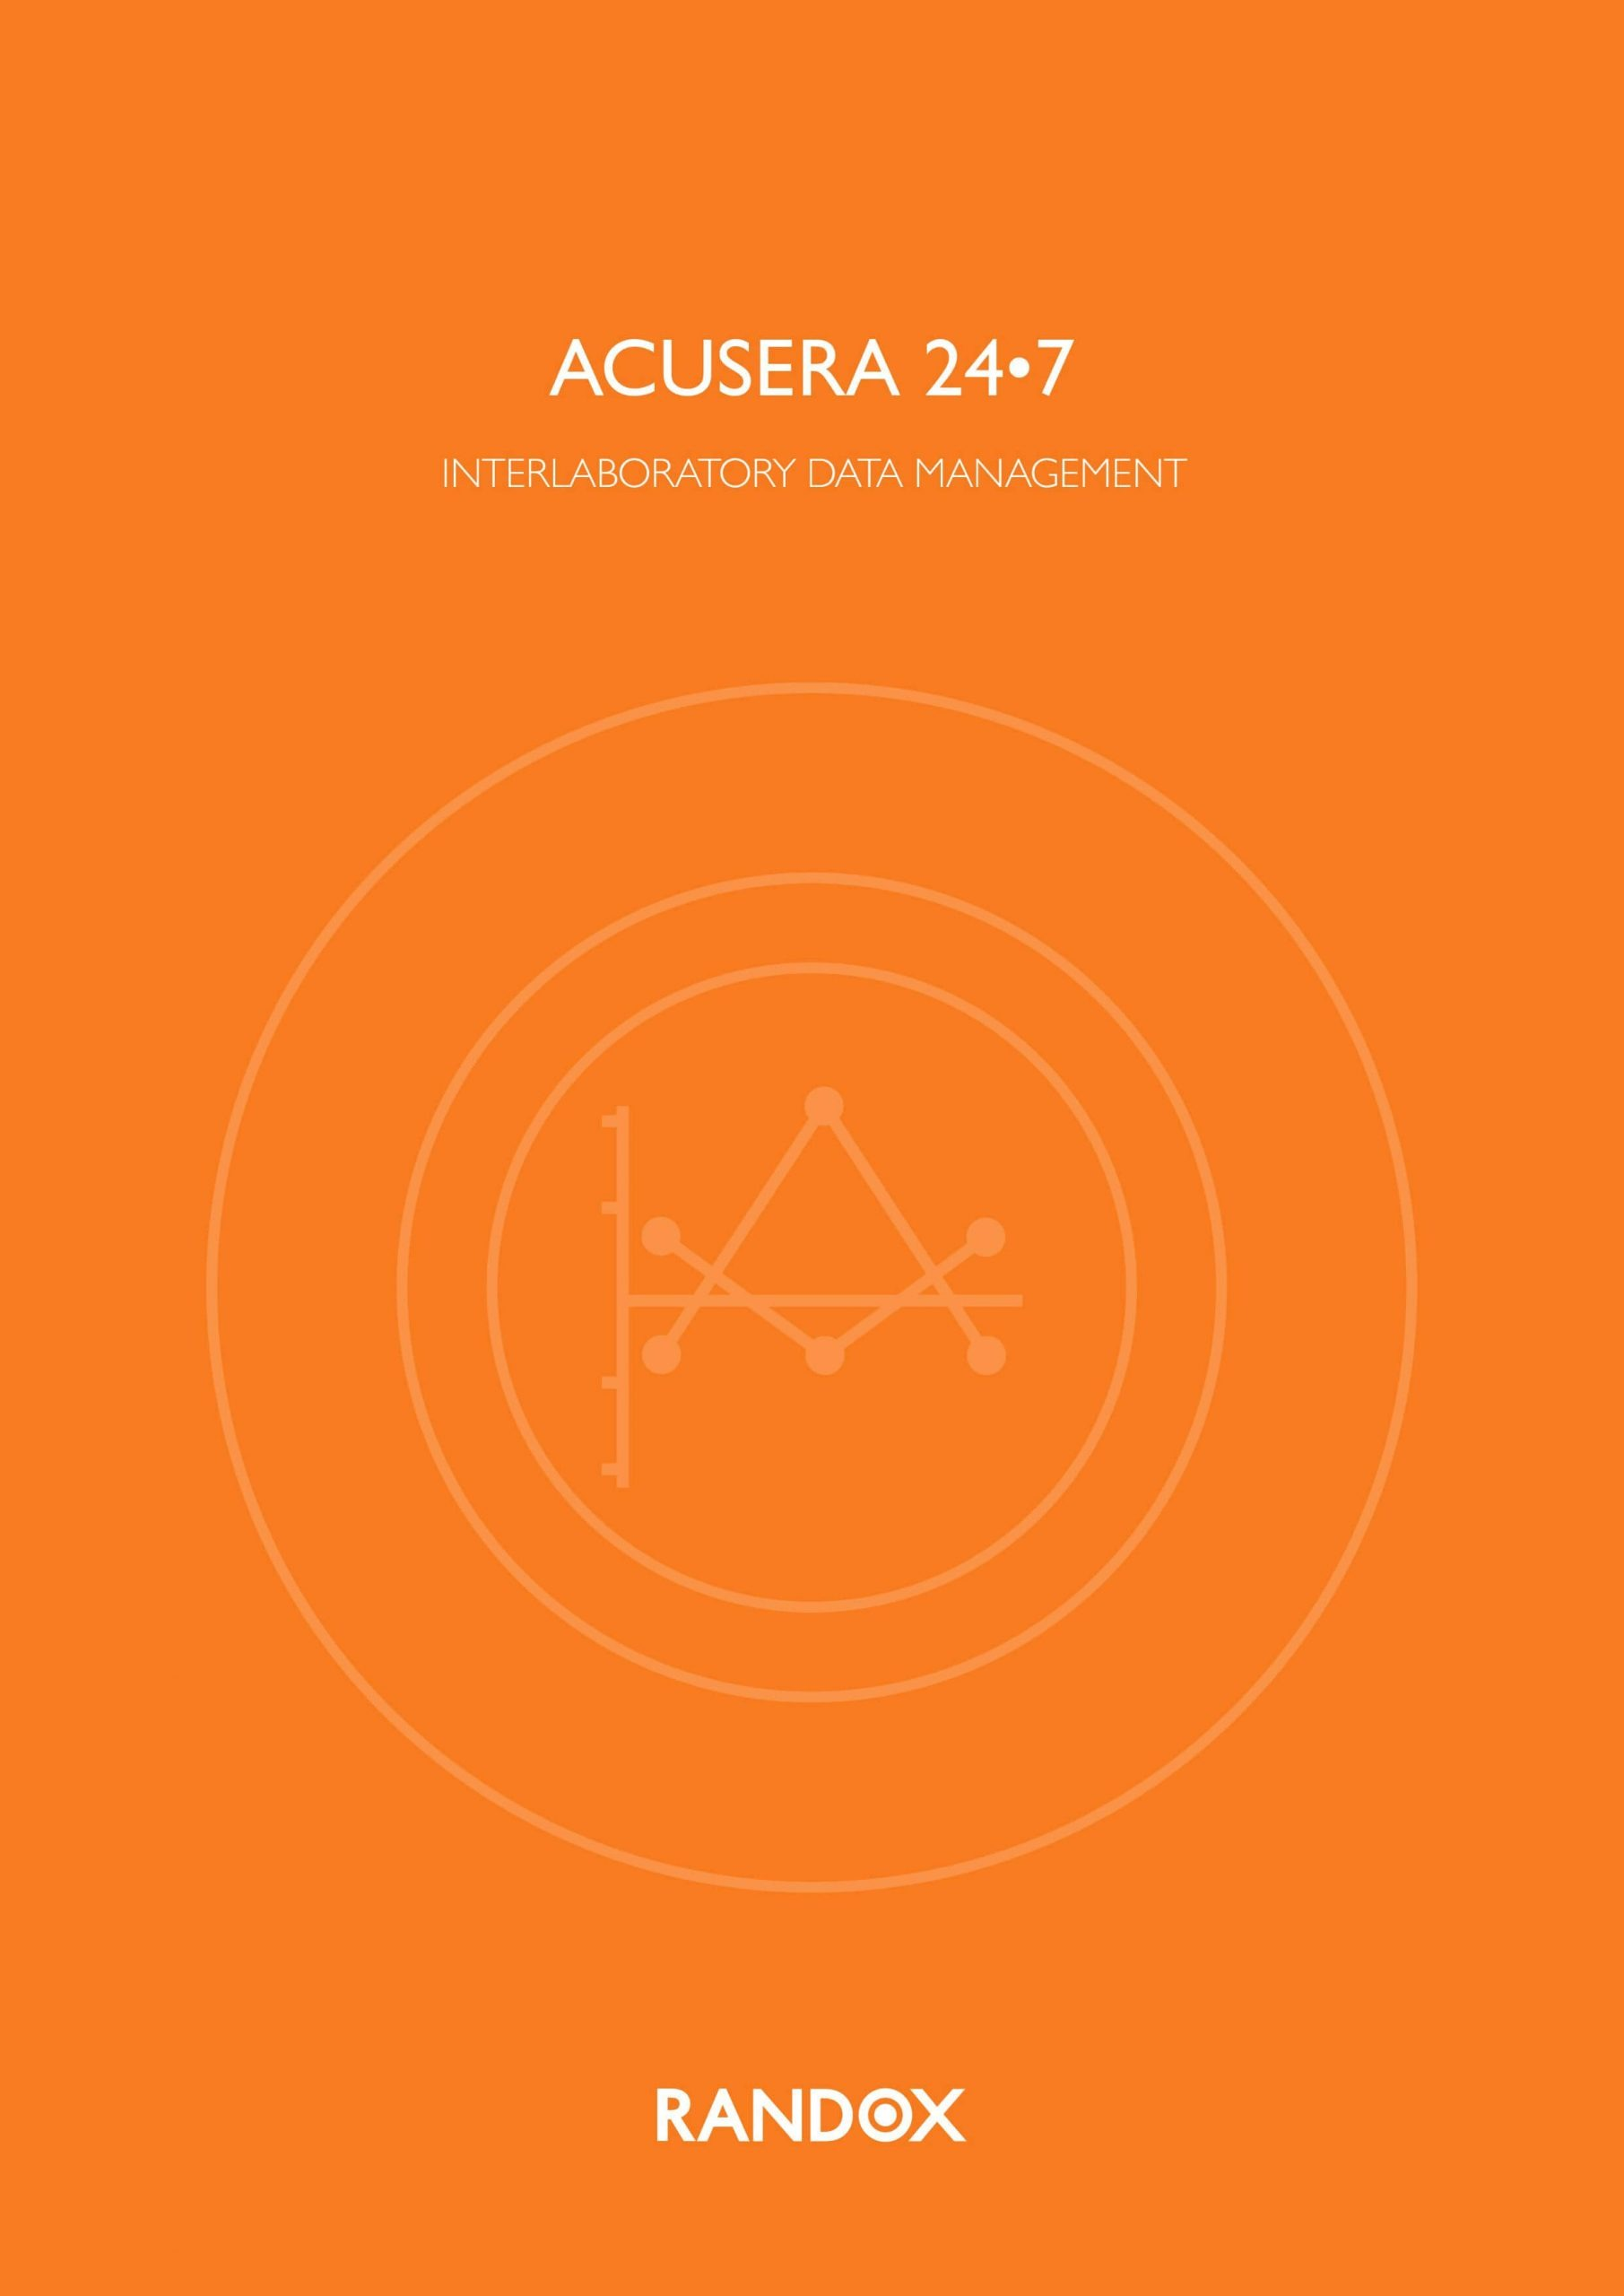 LT244 - Acusera 24.7 - Interlaboratory Data Management - Download